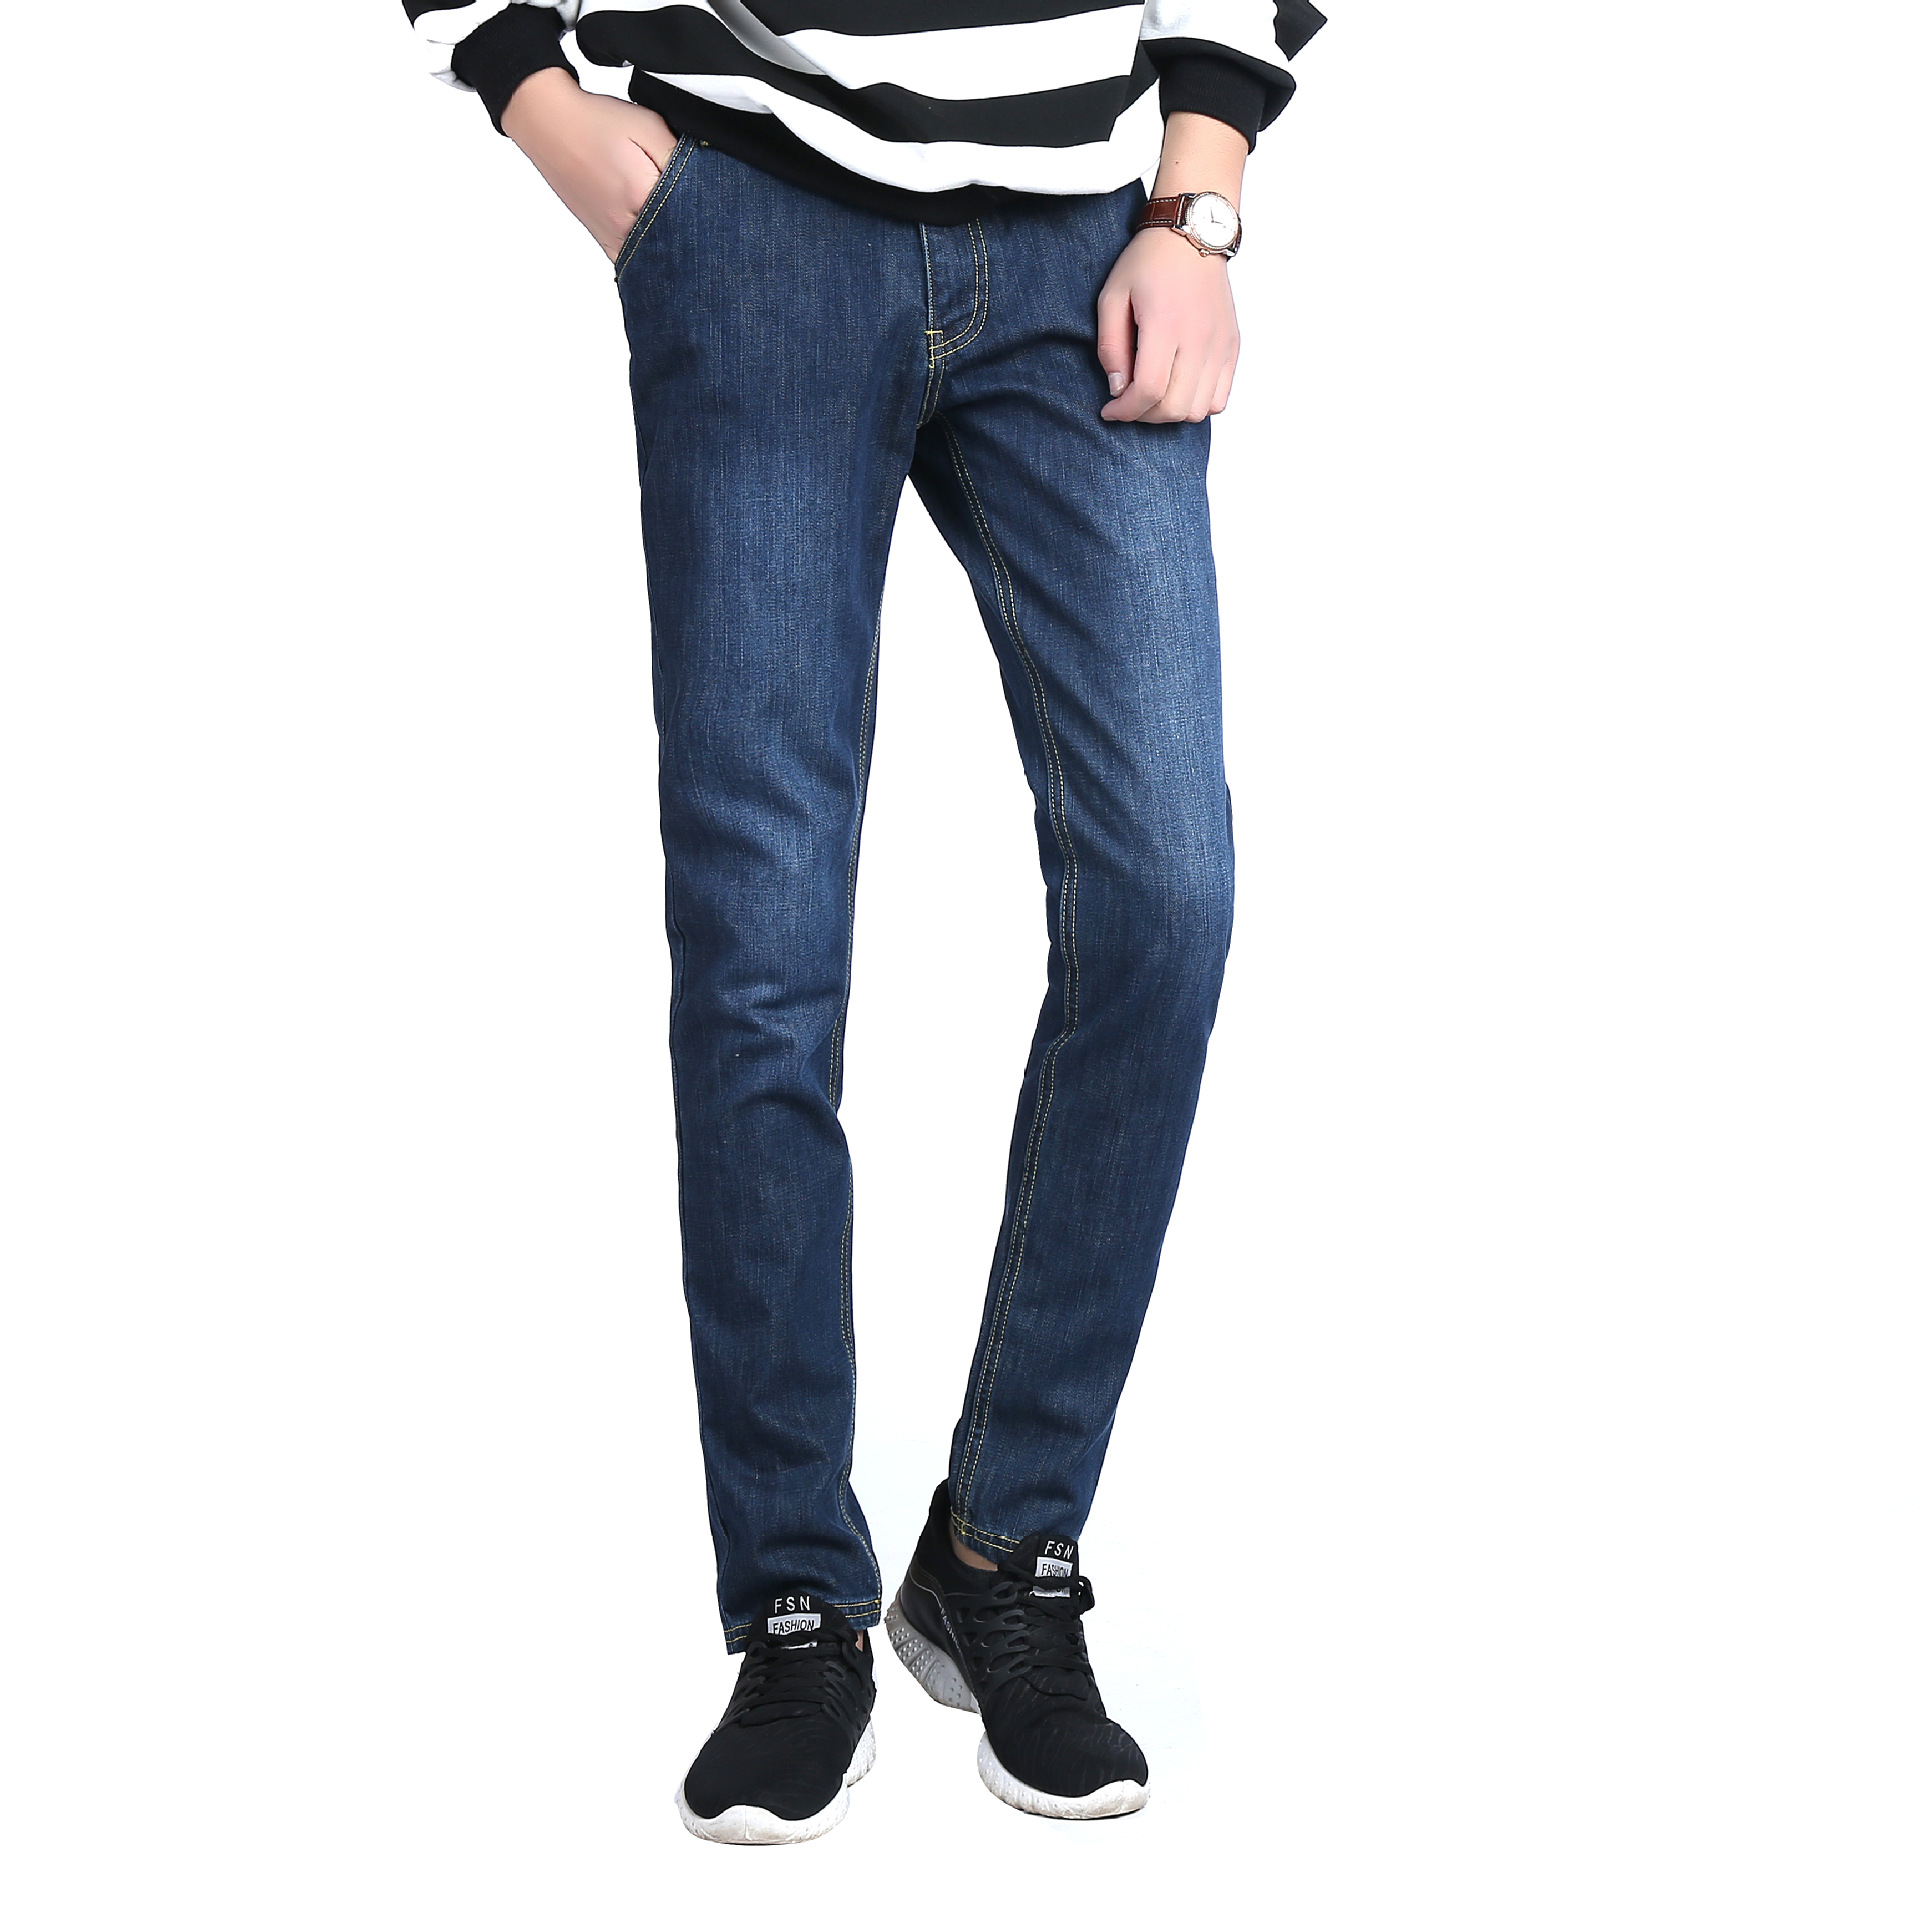 Futexplus Autumn And Winter Jeans Men's Slim Women's Skinny Simple Youth Casual Korean-style MEN'S Trousers Fashion